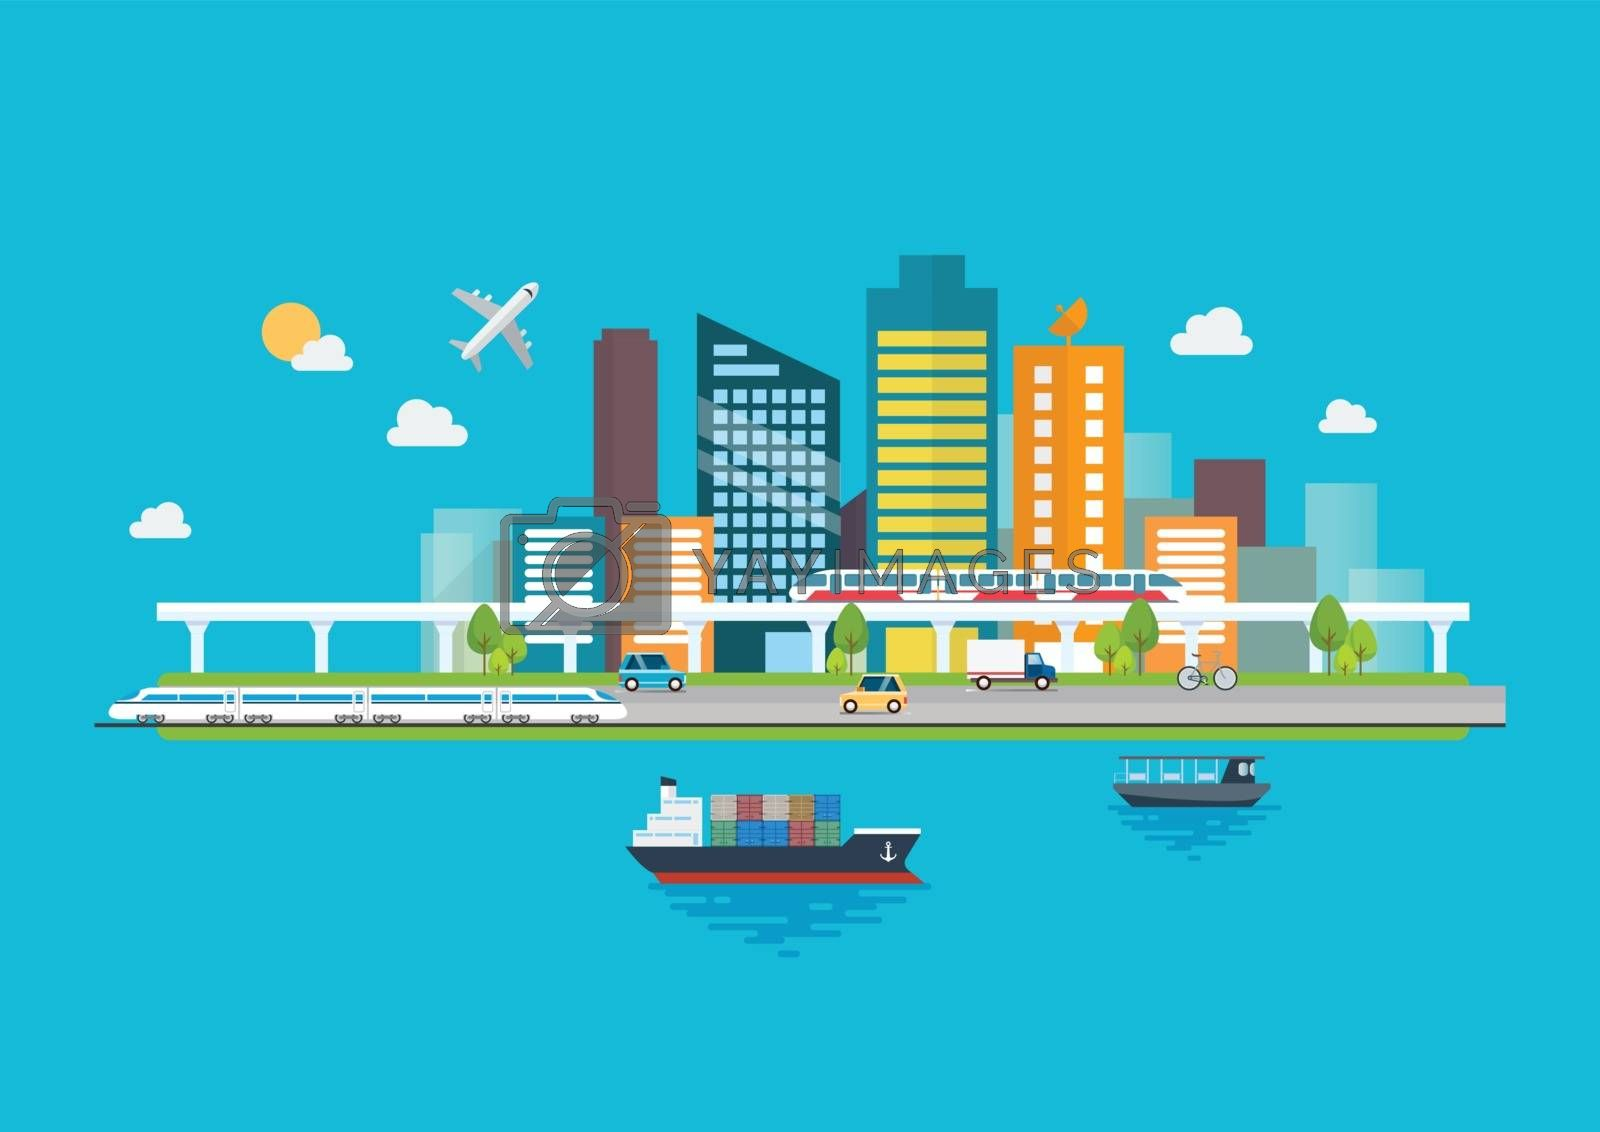 Cityscape with Infrastructure and Transportation. Vector illustration